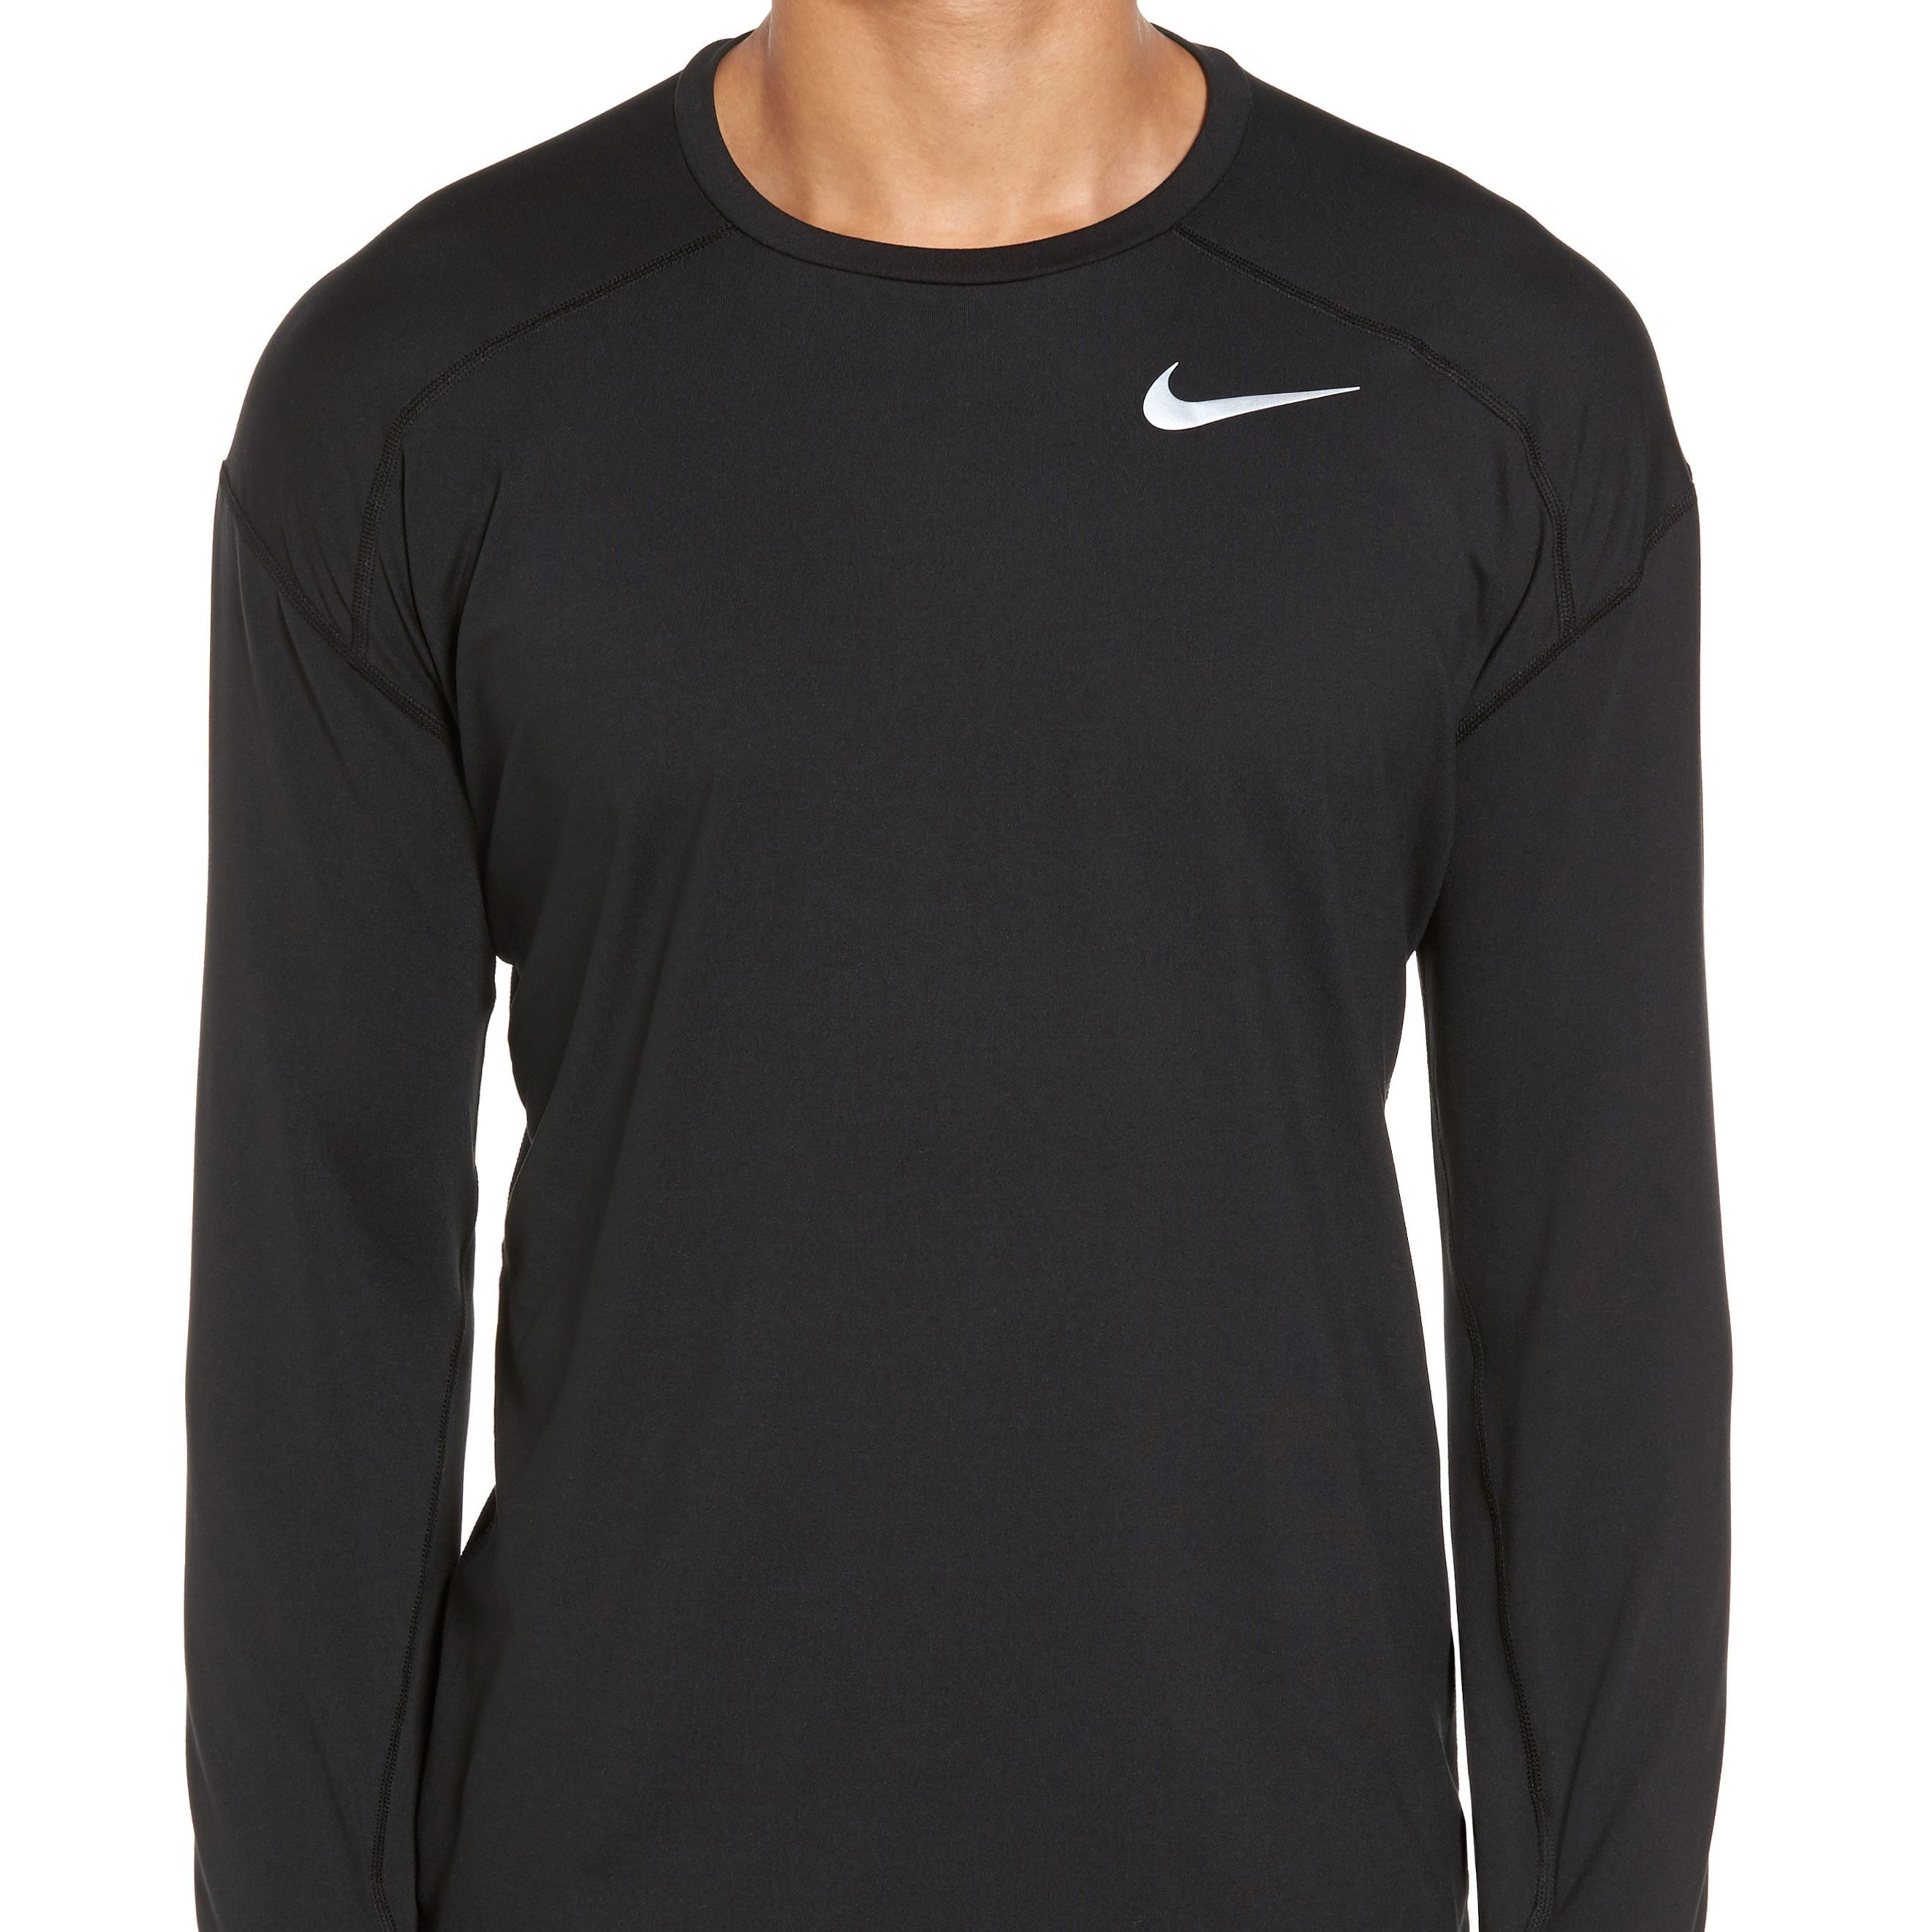 Running Dry Element Long Sleeve T-Shirt NIKE nordstrom.com $55.00 SHOP NOW Cool summer mornings require a lightweight, sweat-wicking performance layer for all Dad's active pursuits.